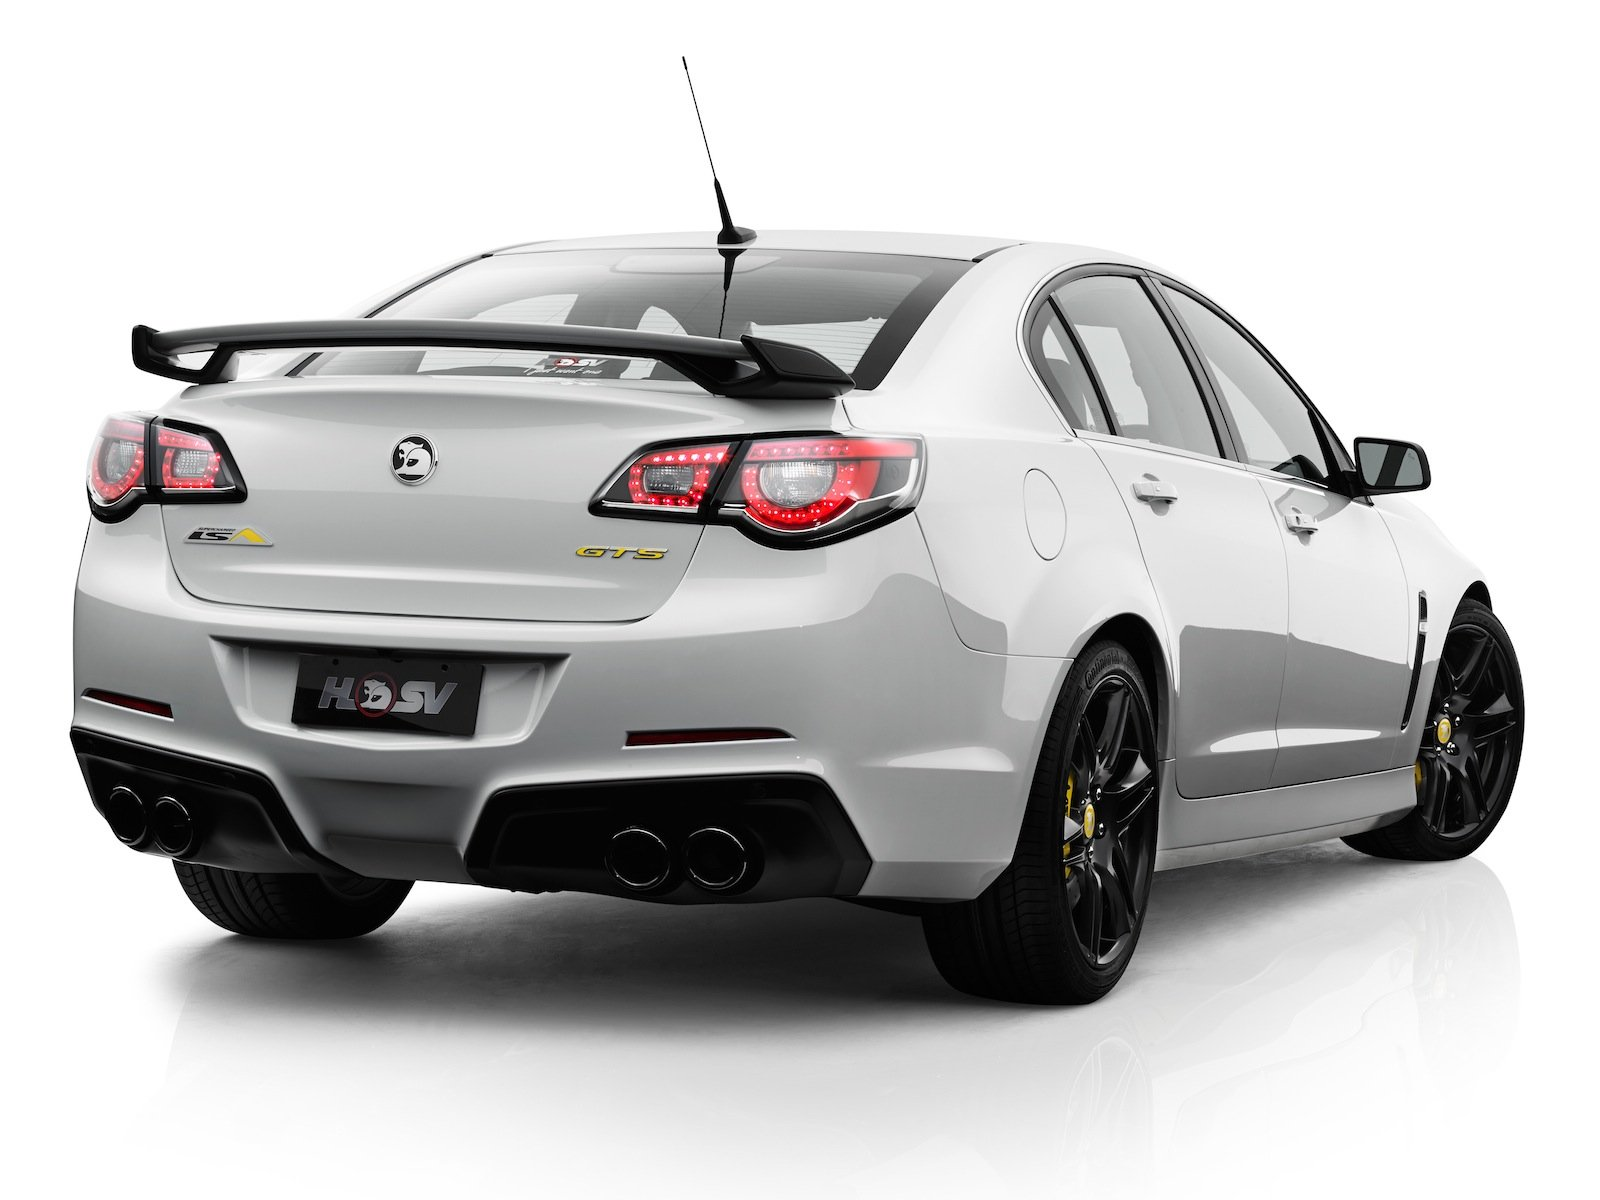 Hsv Gts Fastest Aussie Car Ever Claims 4 4 Second 0 100km